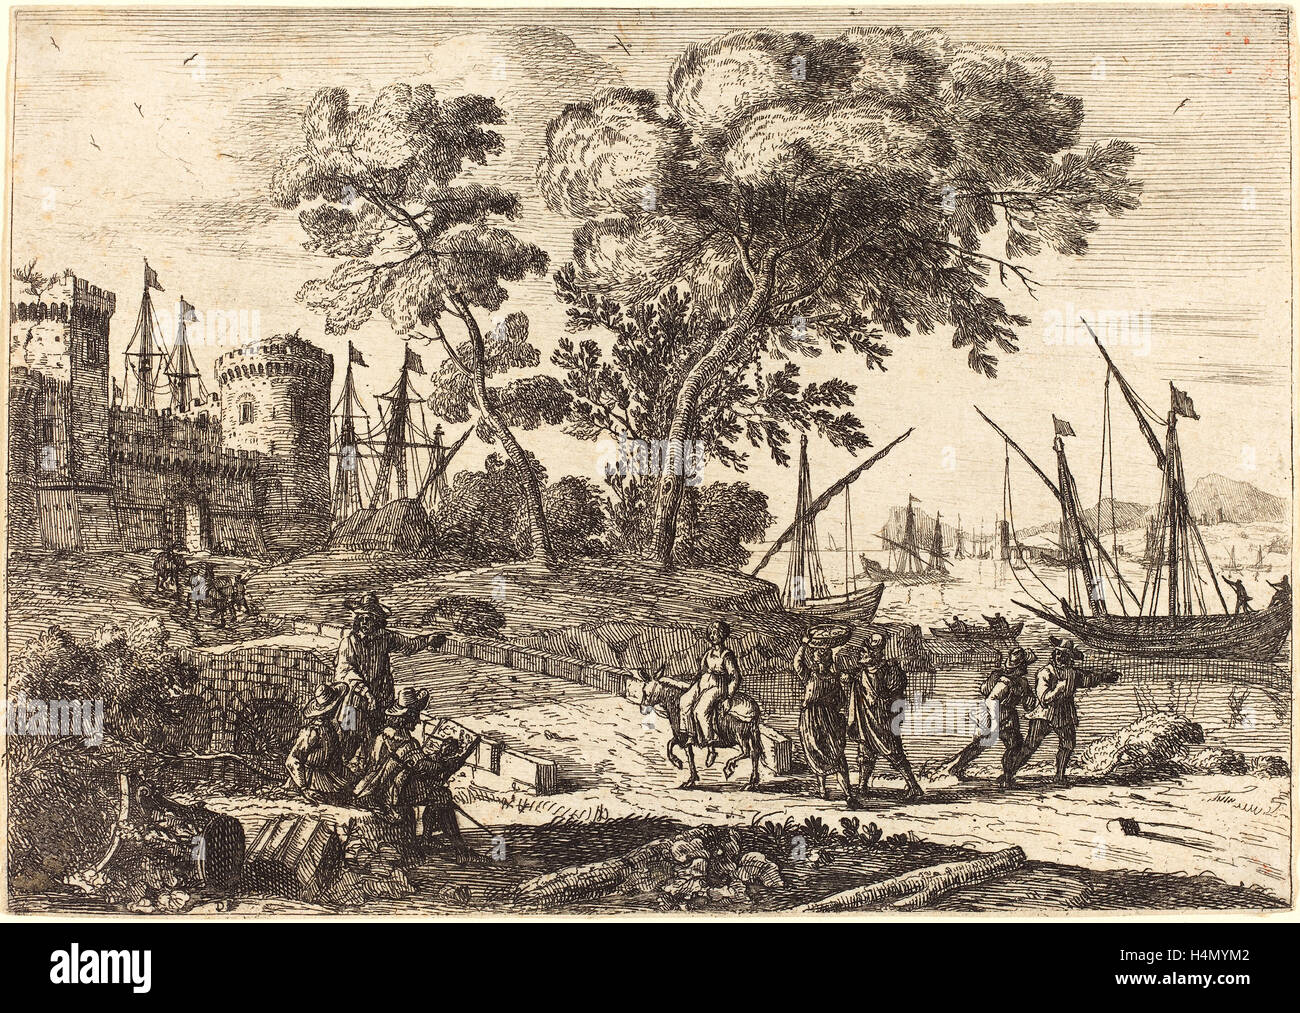 Claude Lorrain (French, 1604-1605 - 1682), Coast Scene with an Artist (Le dessinateur), c. 1638-1641, etching Stock Photo